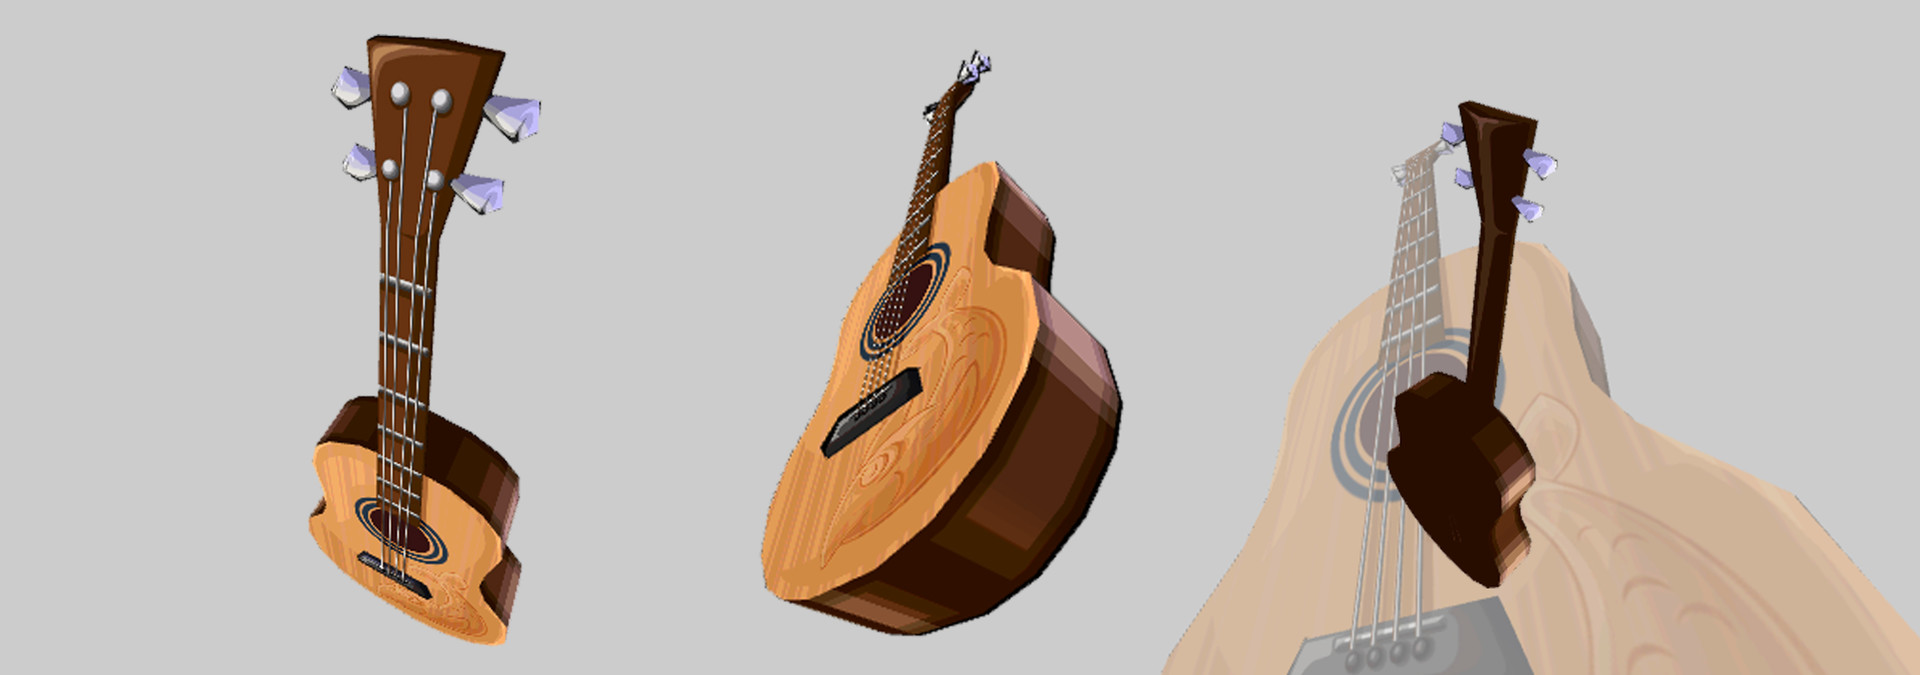 Penguin Guitar Model and texture